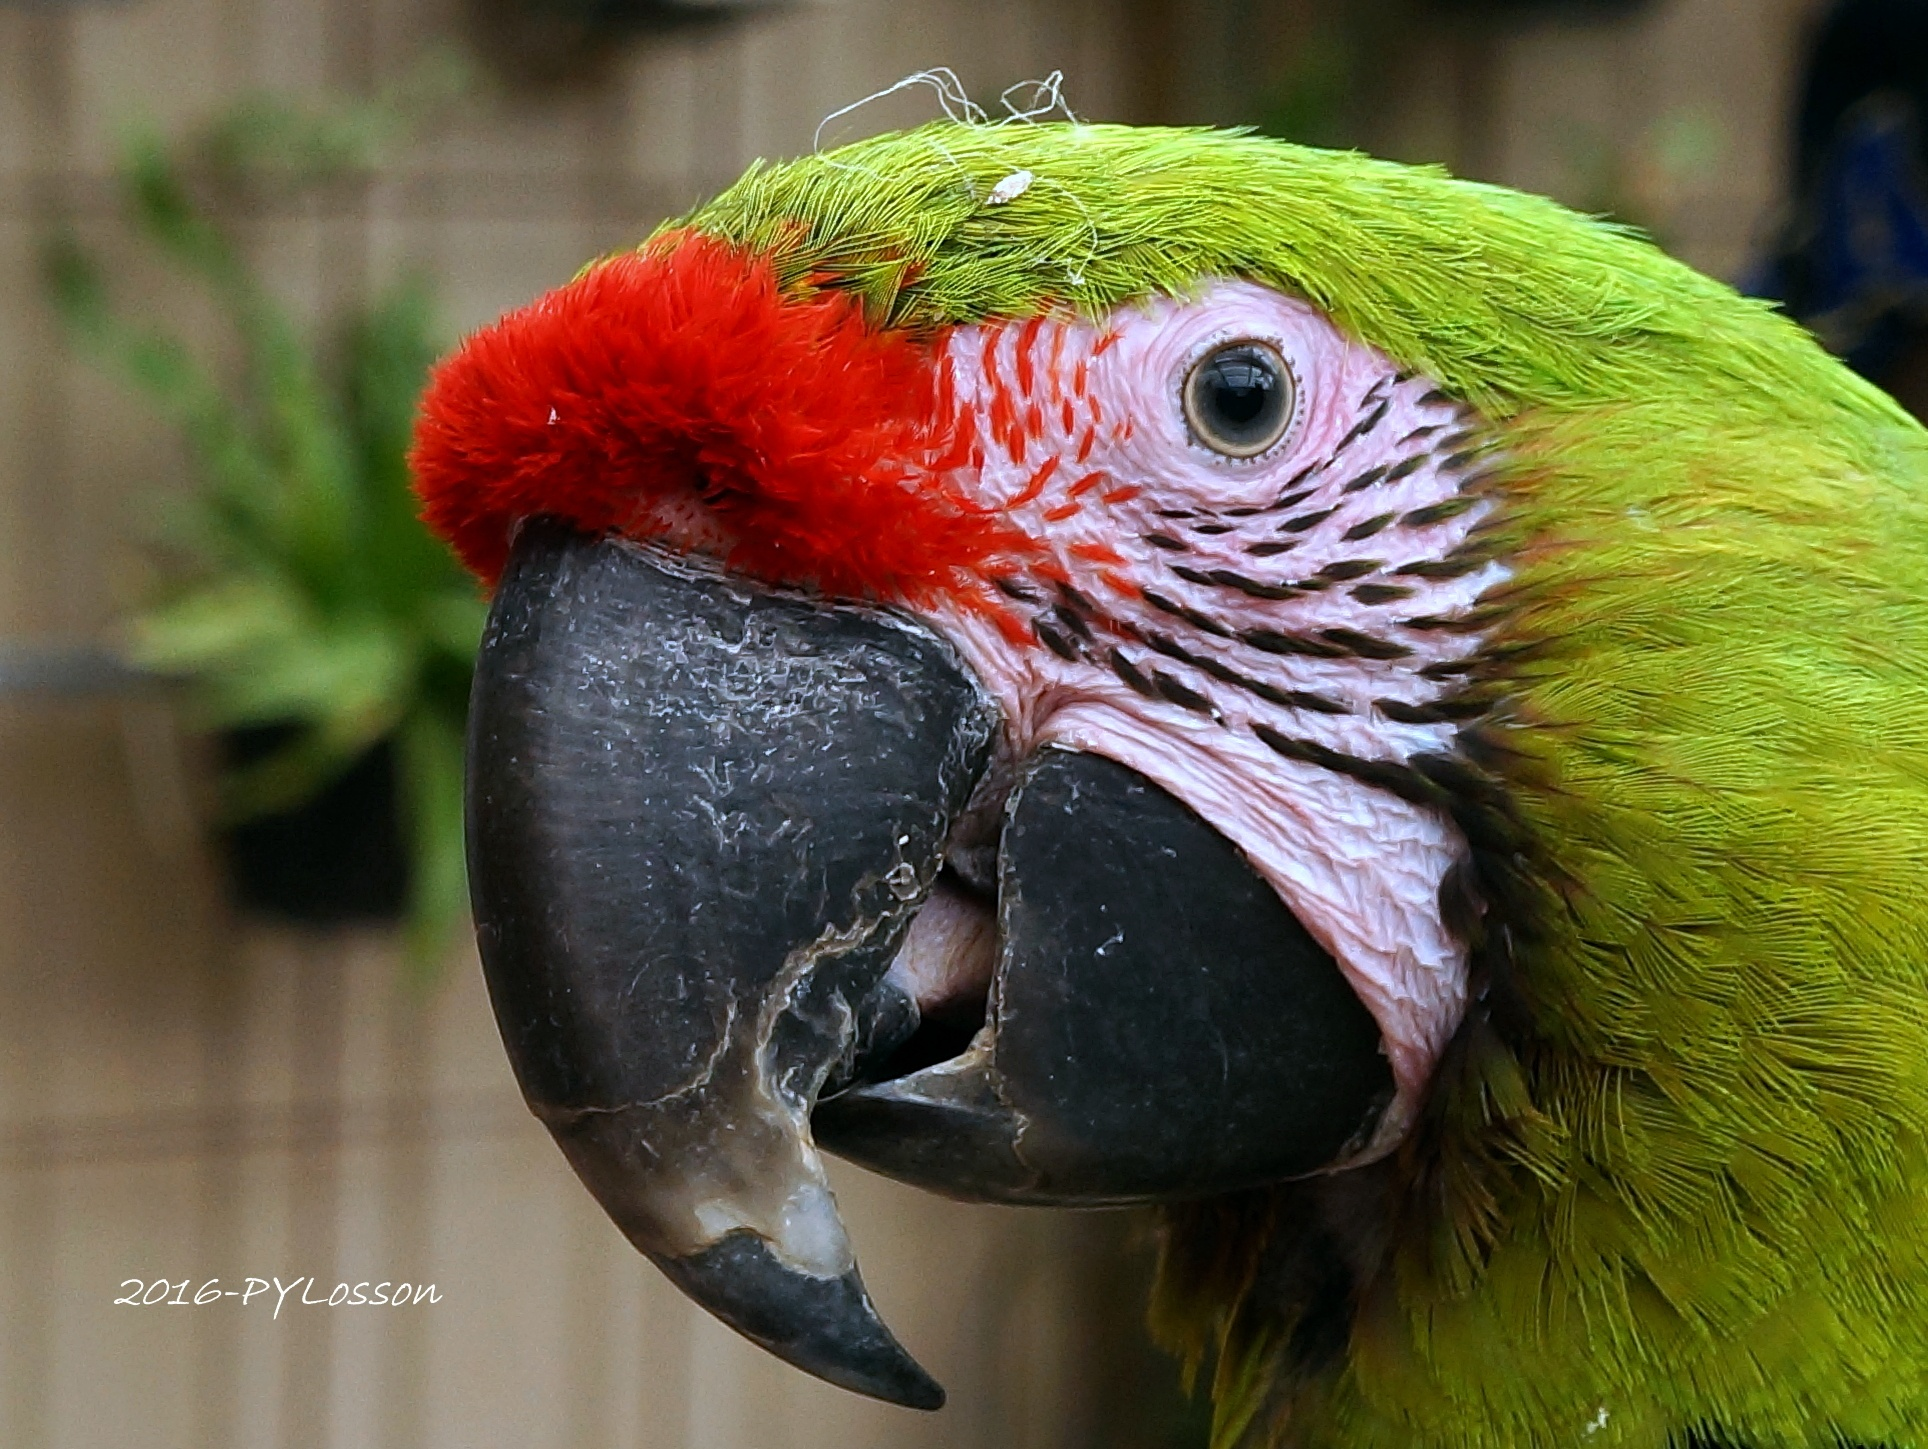 Parrot by Pierre-Yves Losson